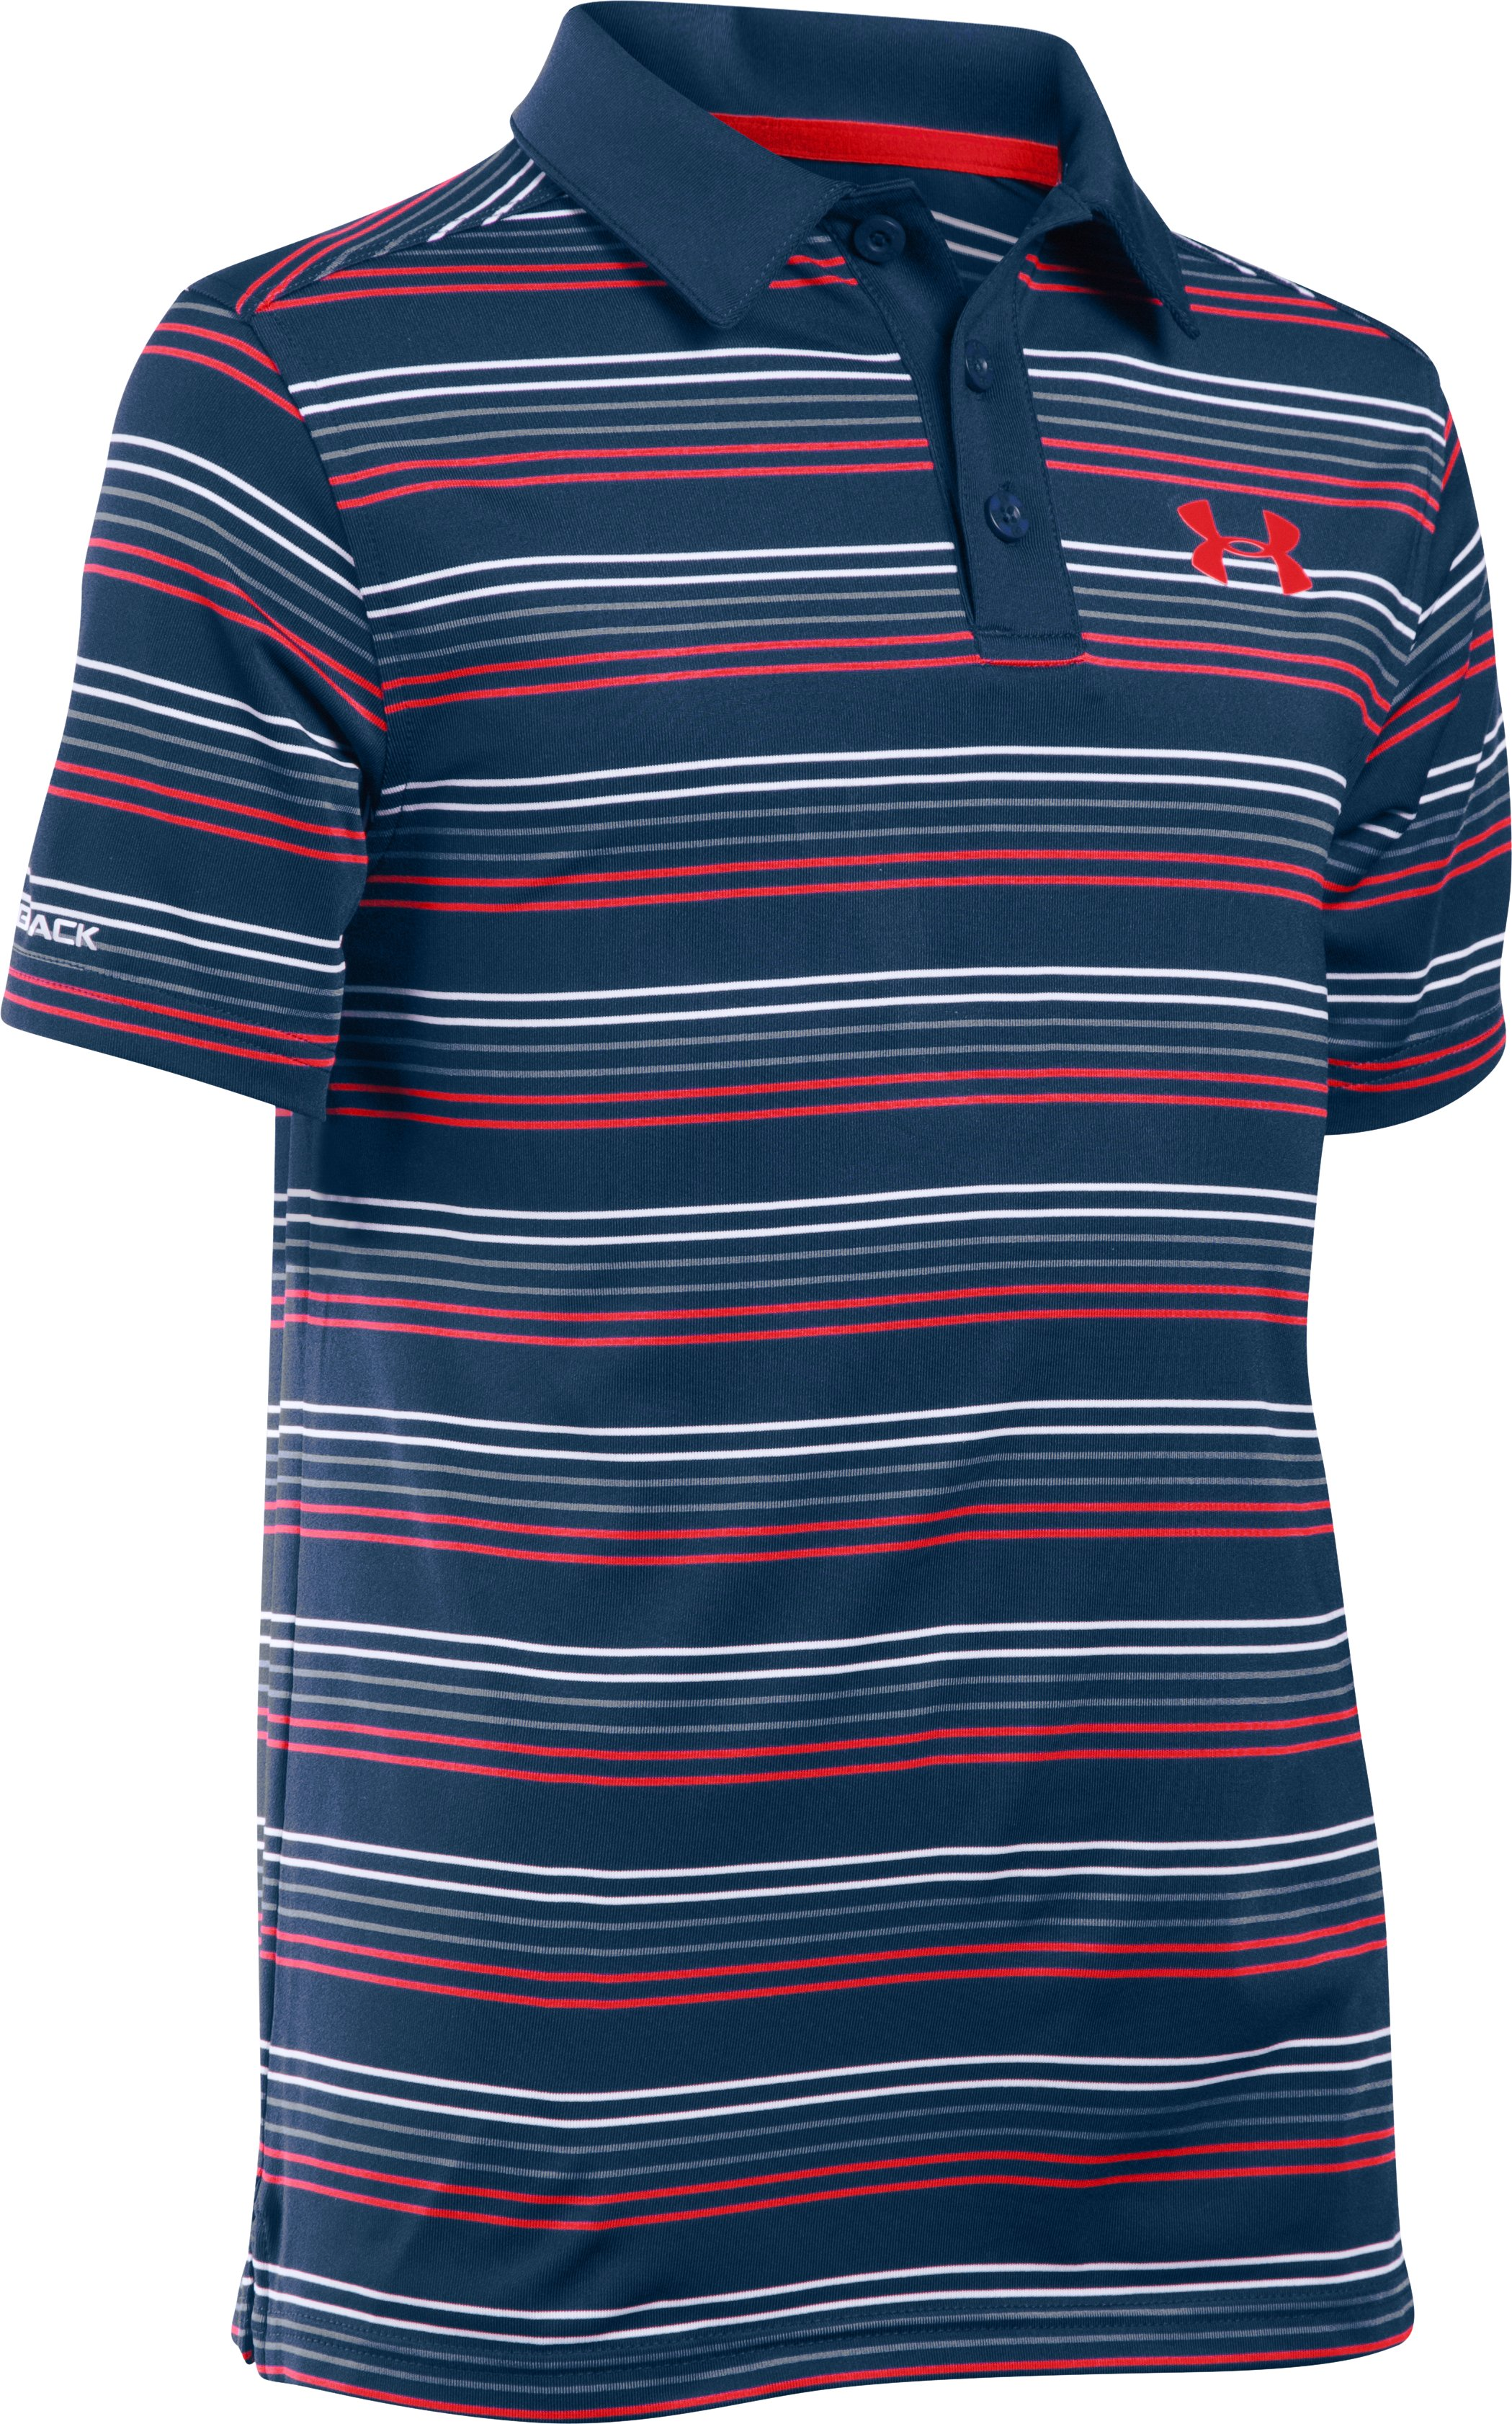 Boys' UA coldblack® Draw Polo Shirt, BLACKOUT NAVY